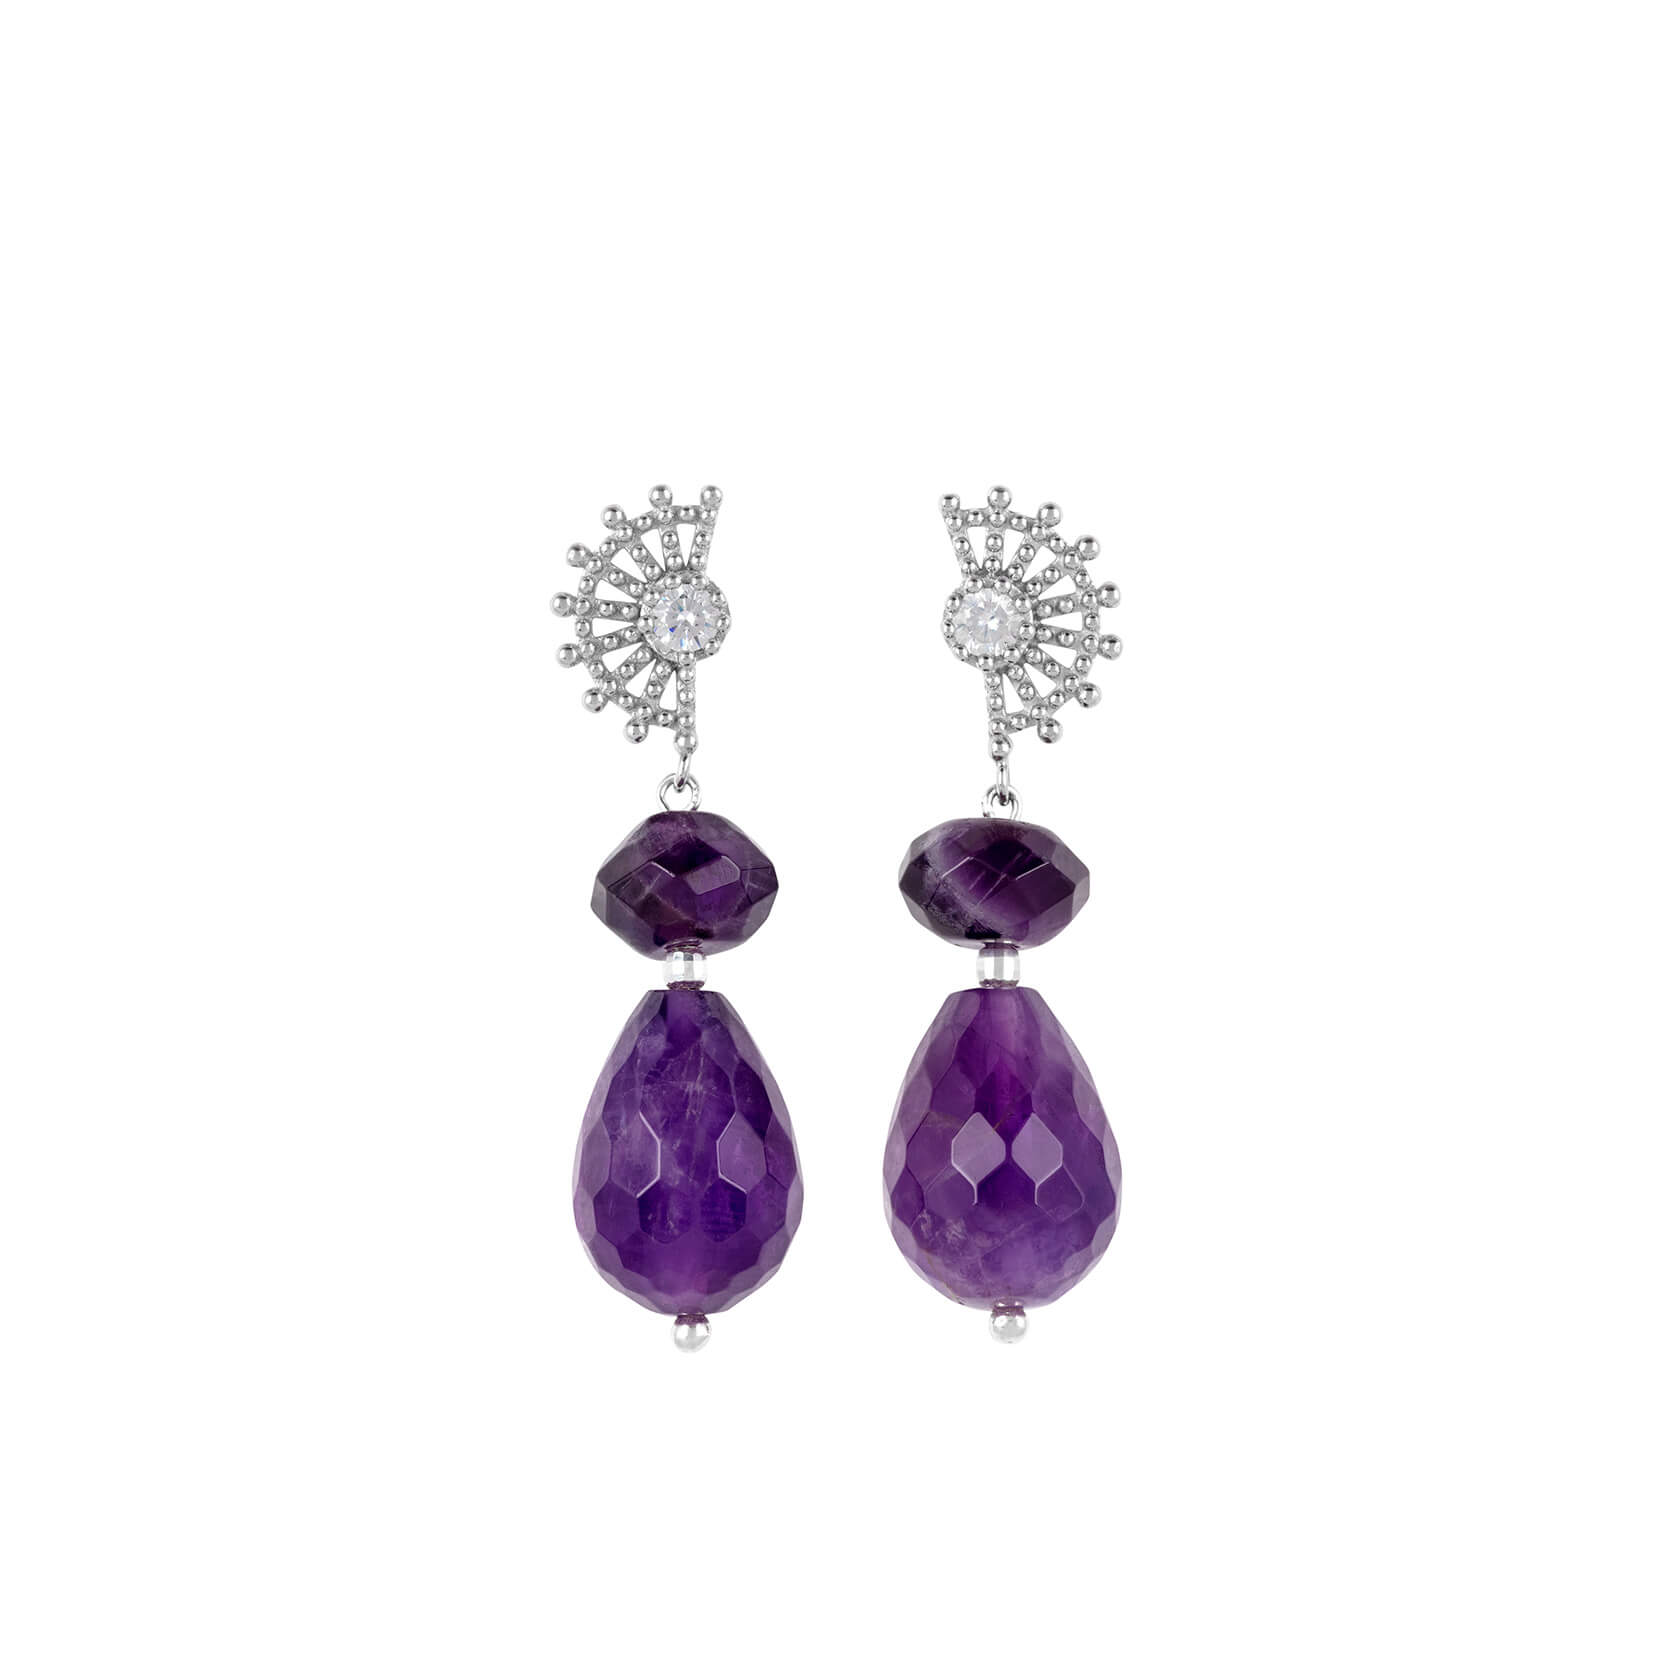 Big amethyst earrings